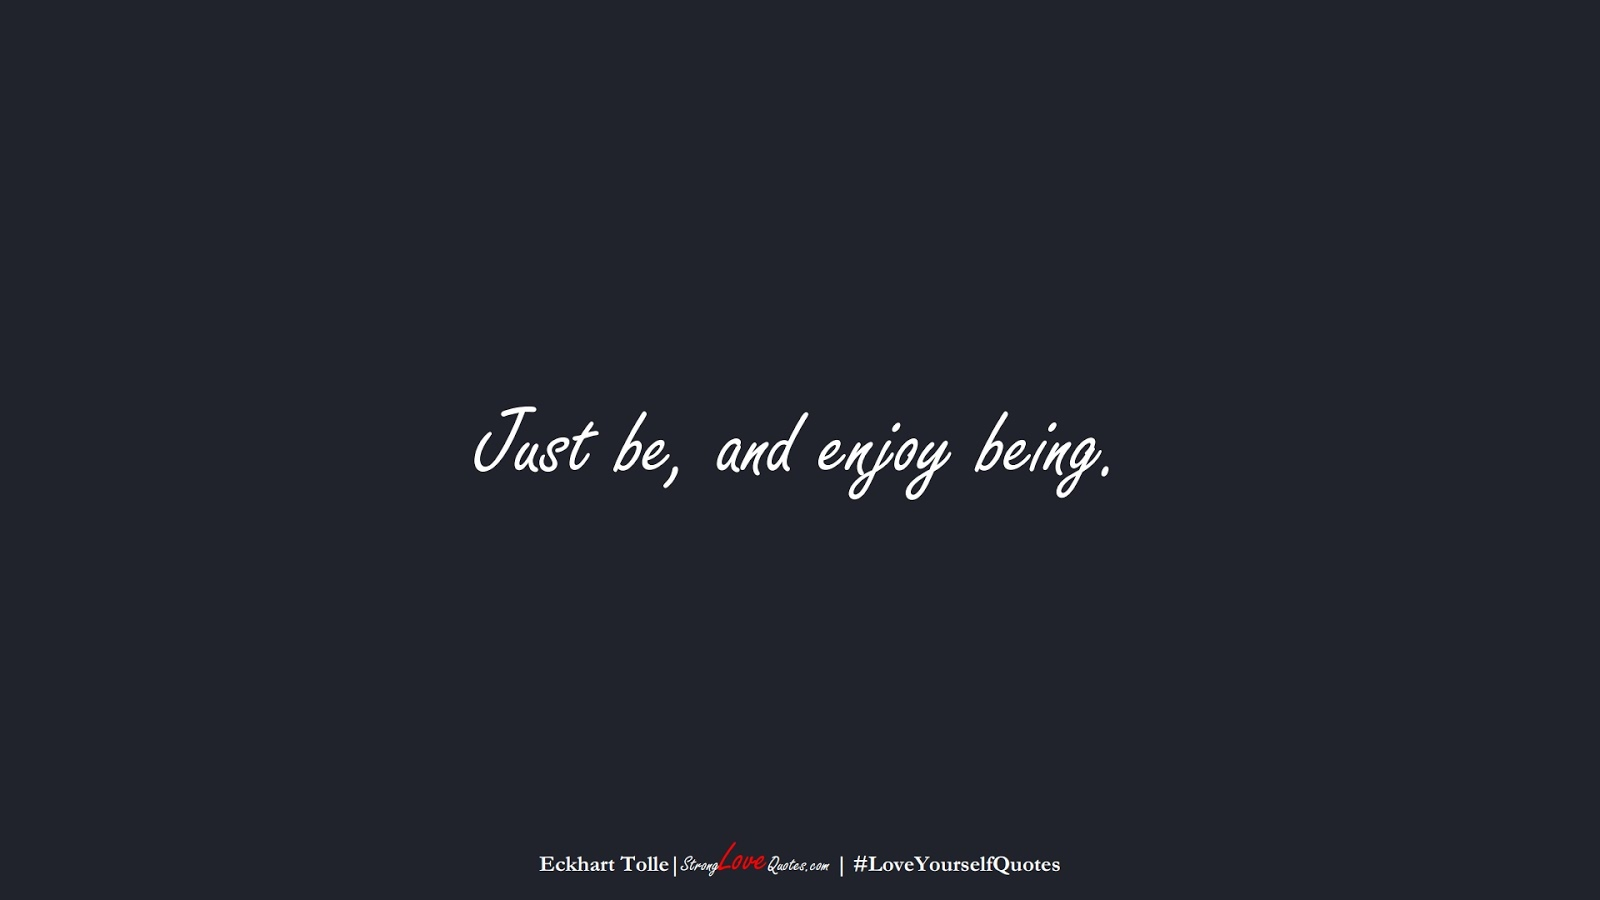 Just be, and enjoy being. (Eckhart Tolle);  #LoveYourselfQuotes